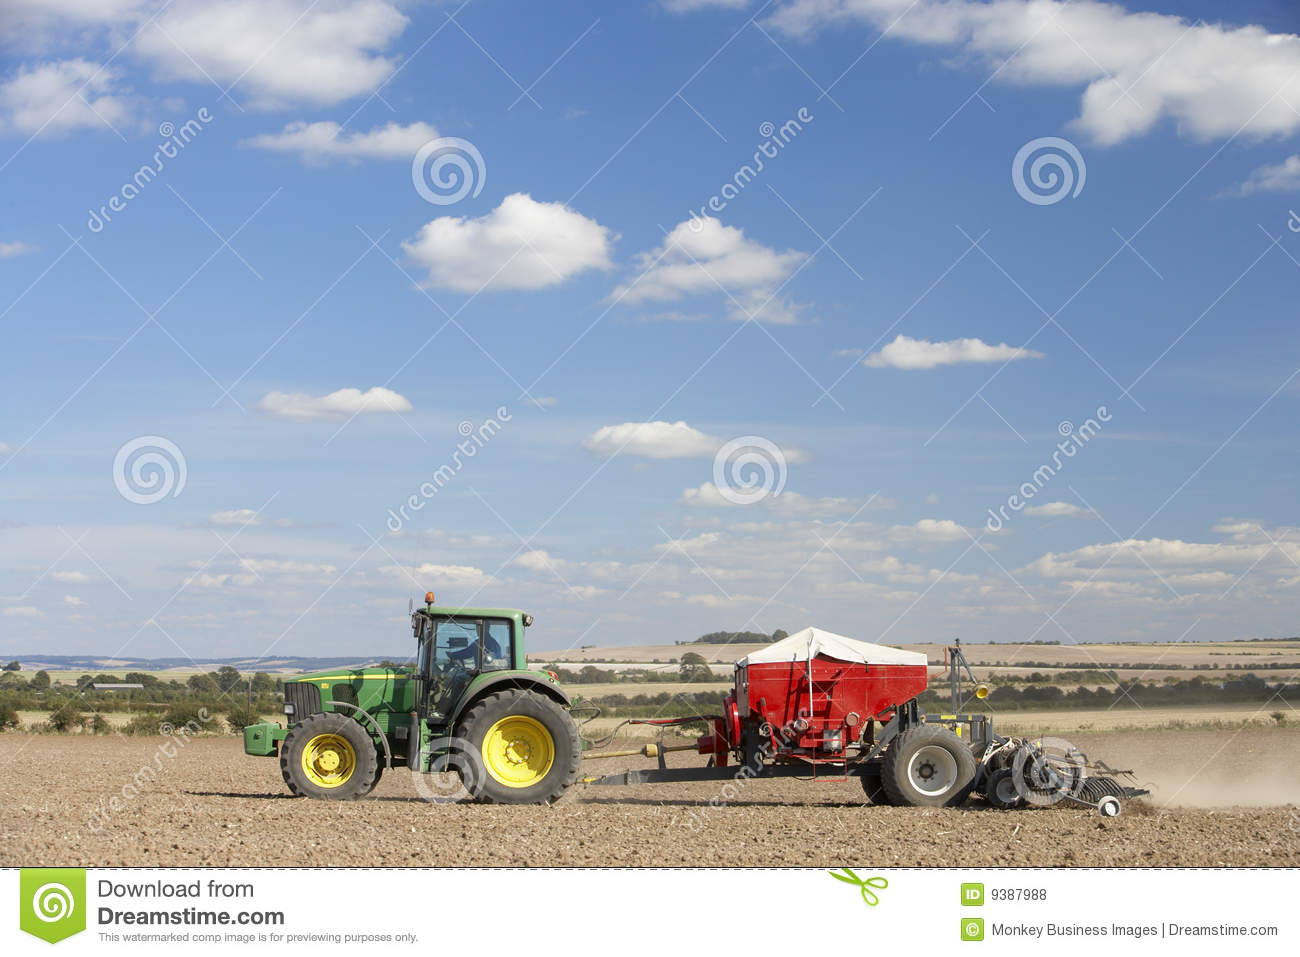 Tractor In Field Planting : Tractor planting seed in field royalty free stock photos